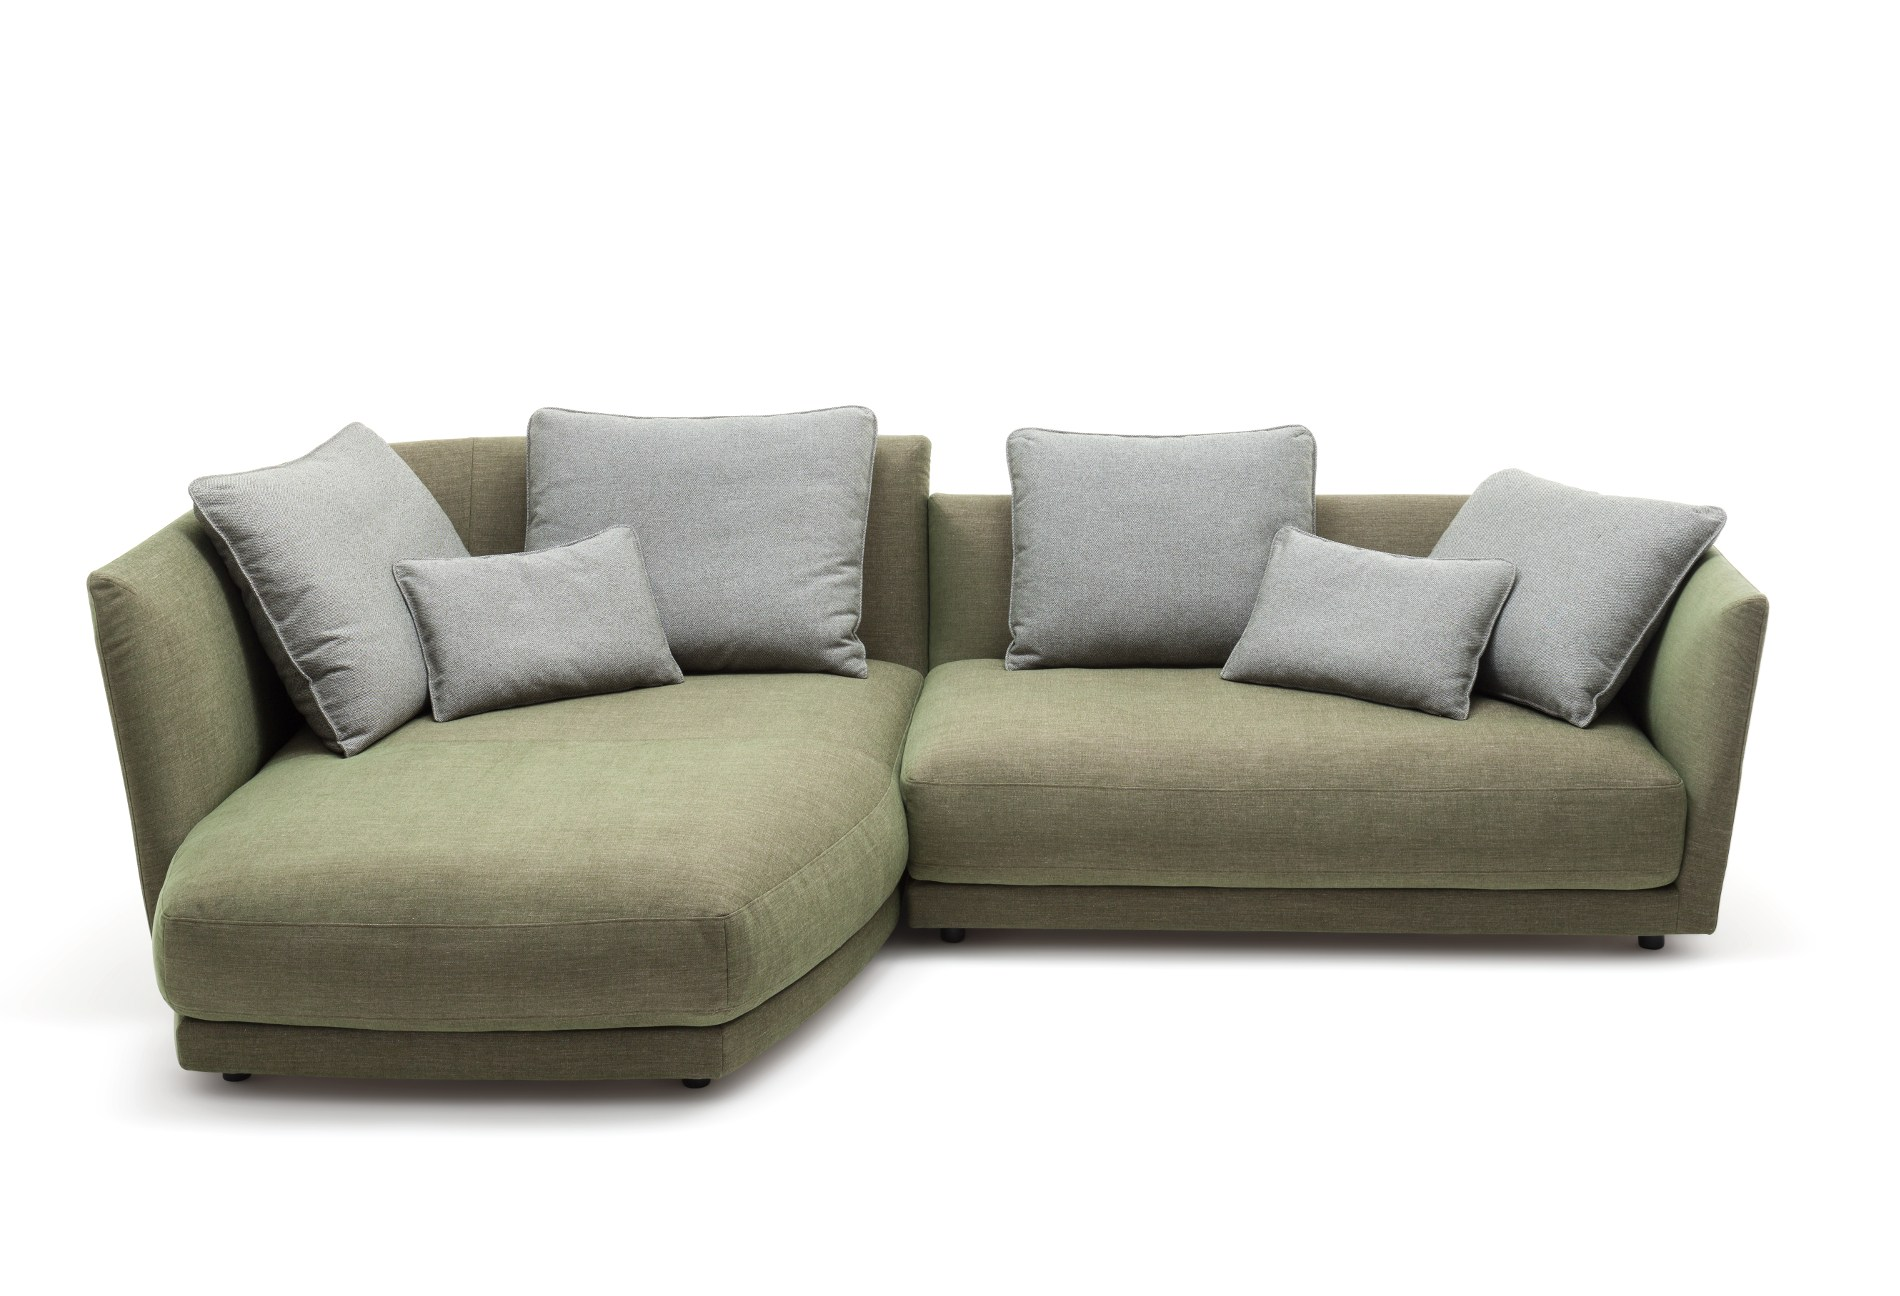 Benz Sofas Amazing With Benz Sofas Cheap Rolf Benz Plura Reclining